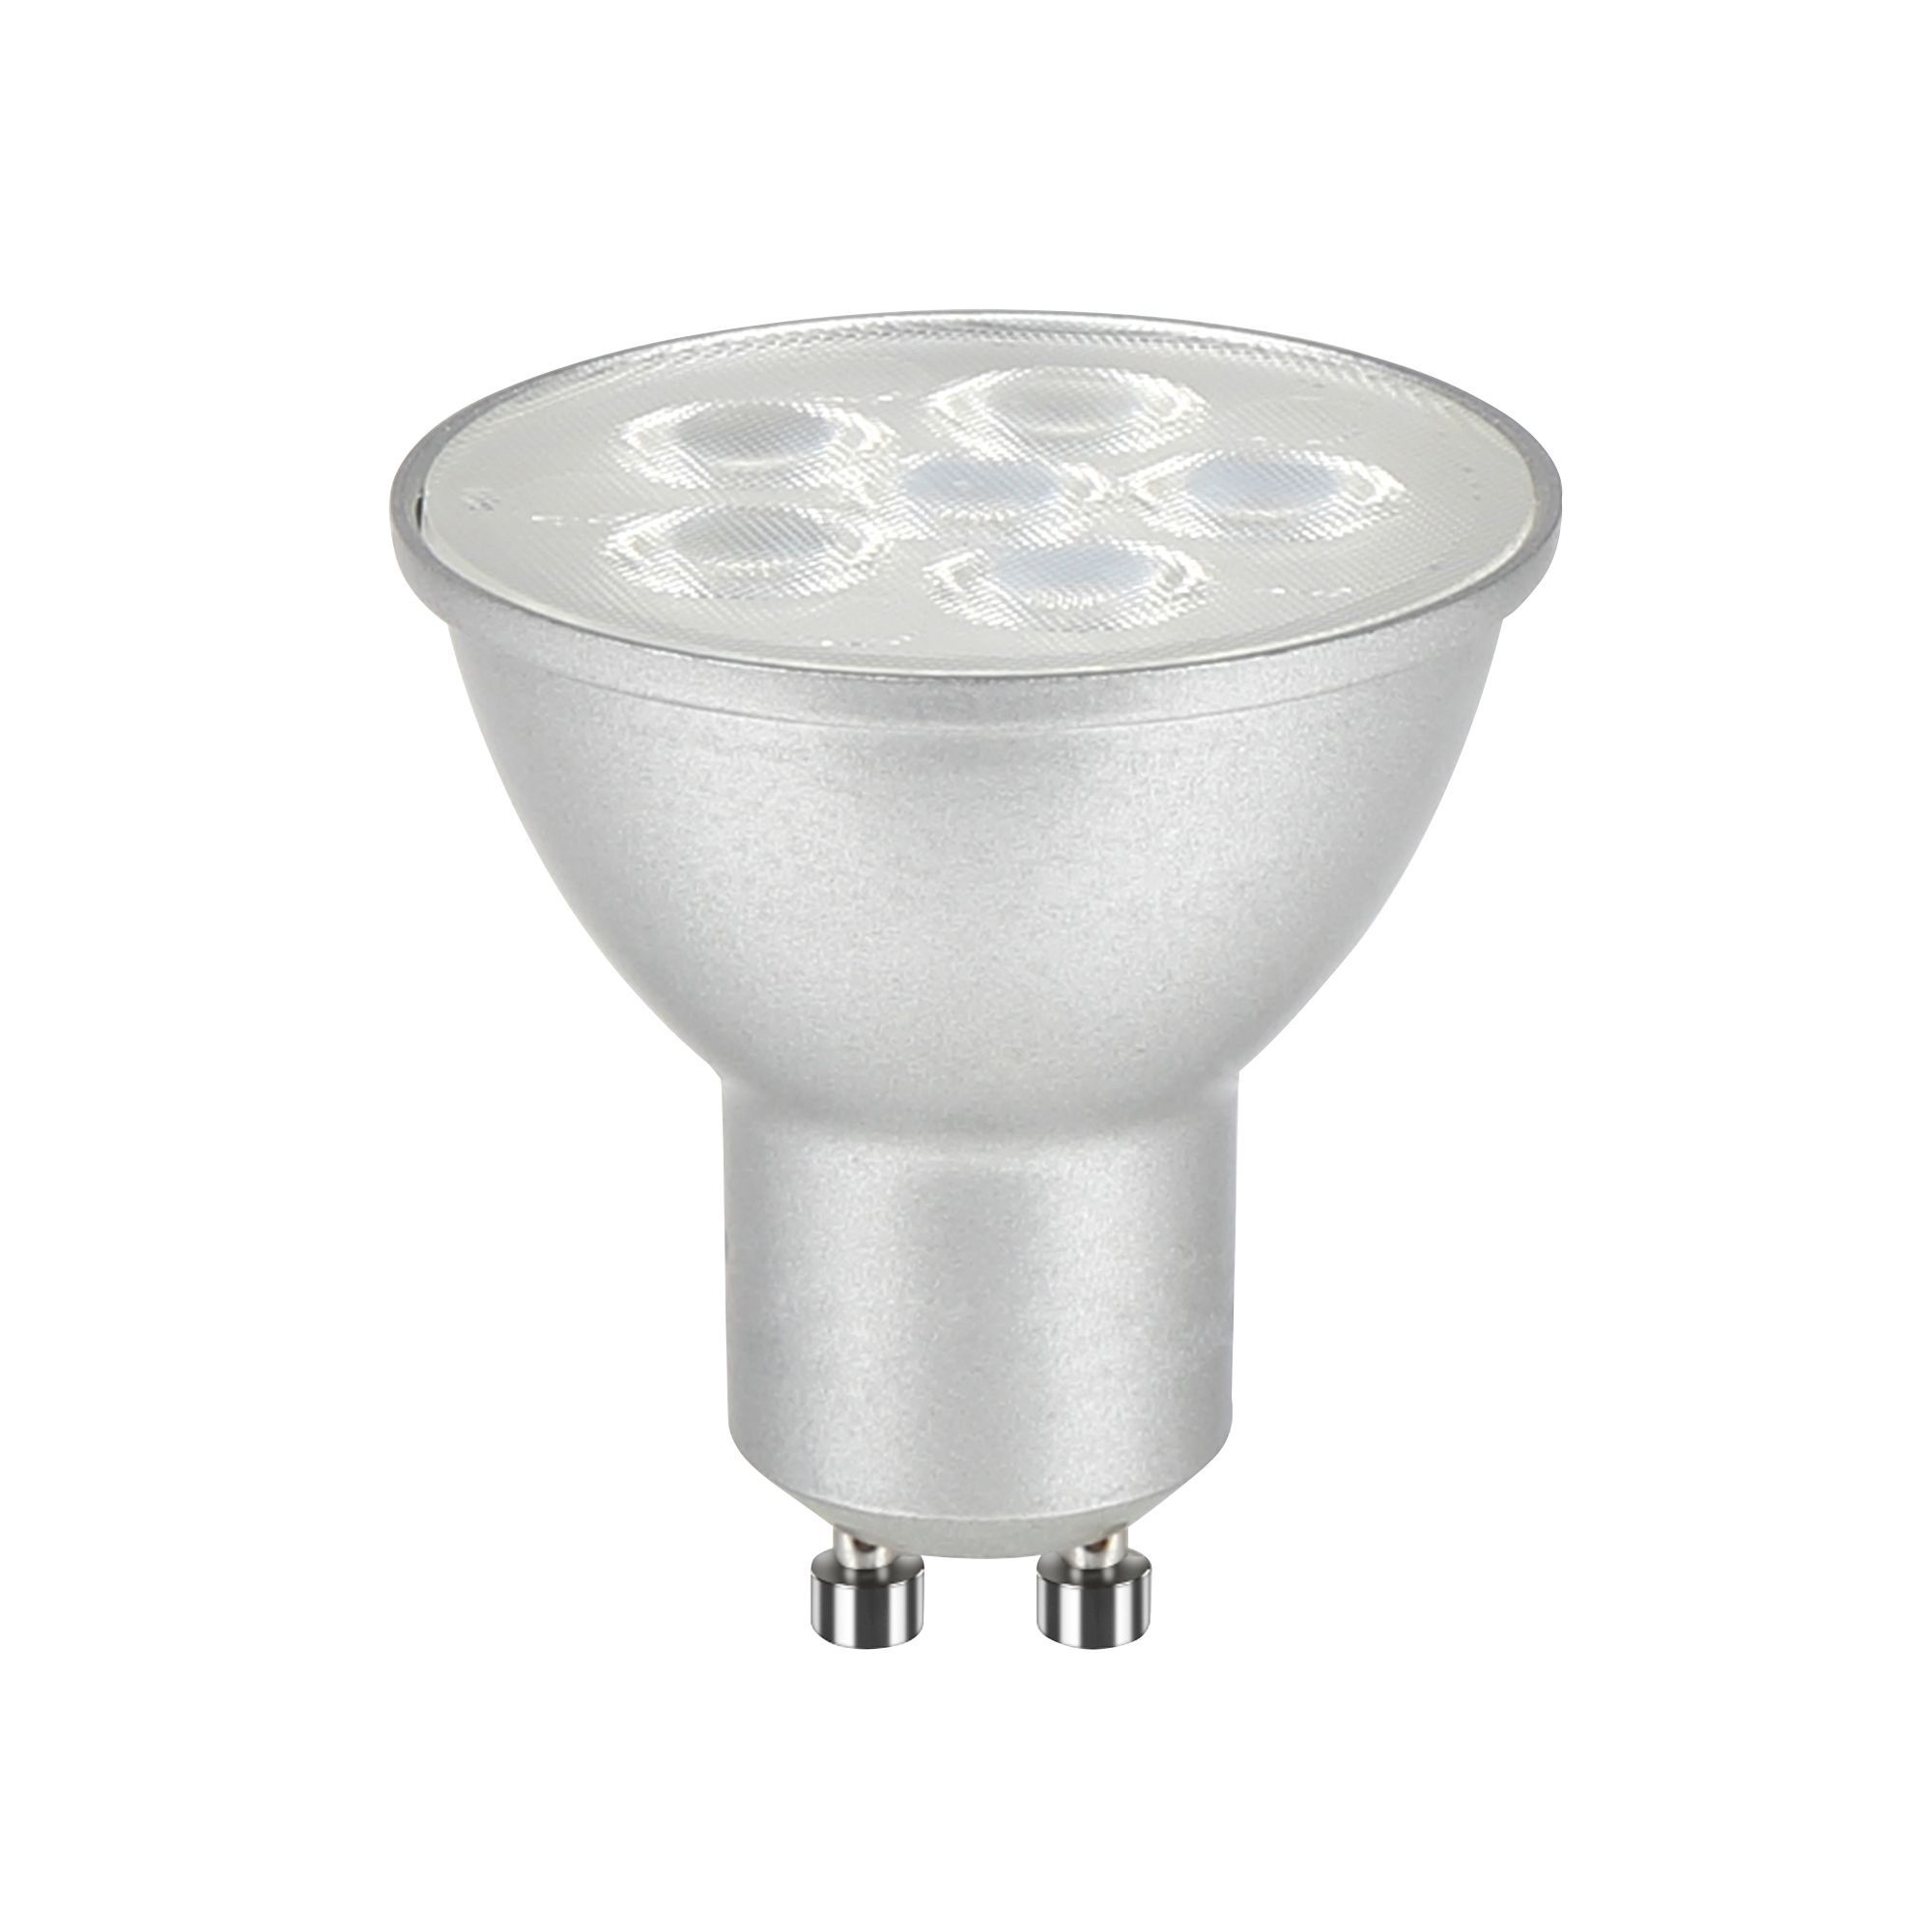 diall gu10 540lm led dimmable reflector light bulb departments diy at b q. Black Bedroom Furniture Sets. Home Design Ideas